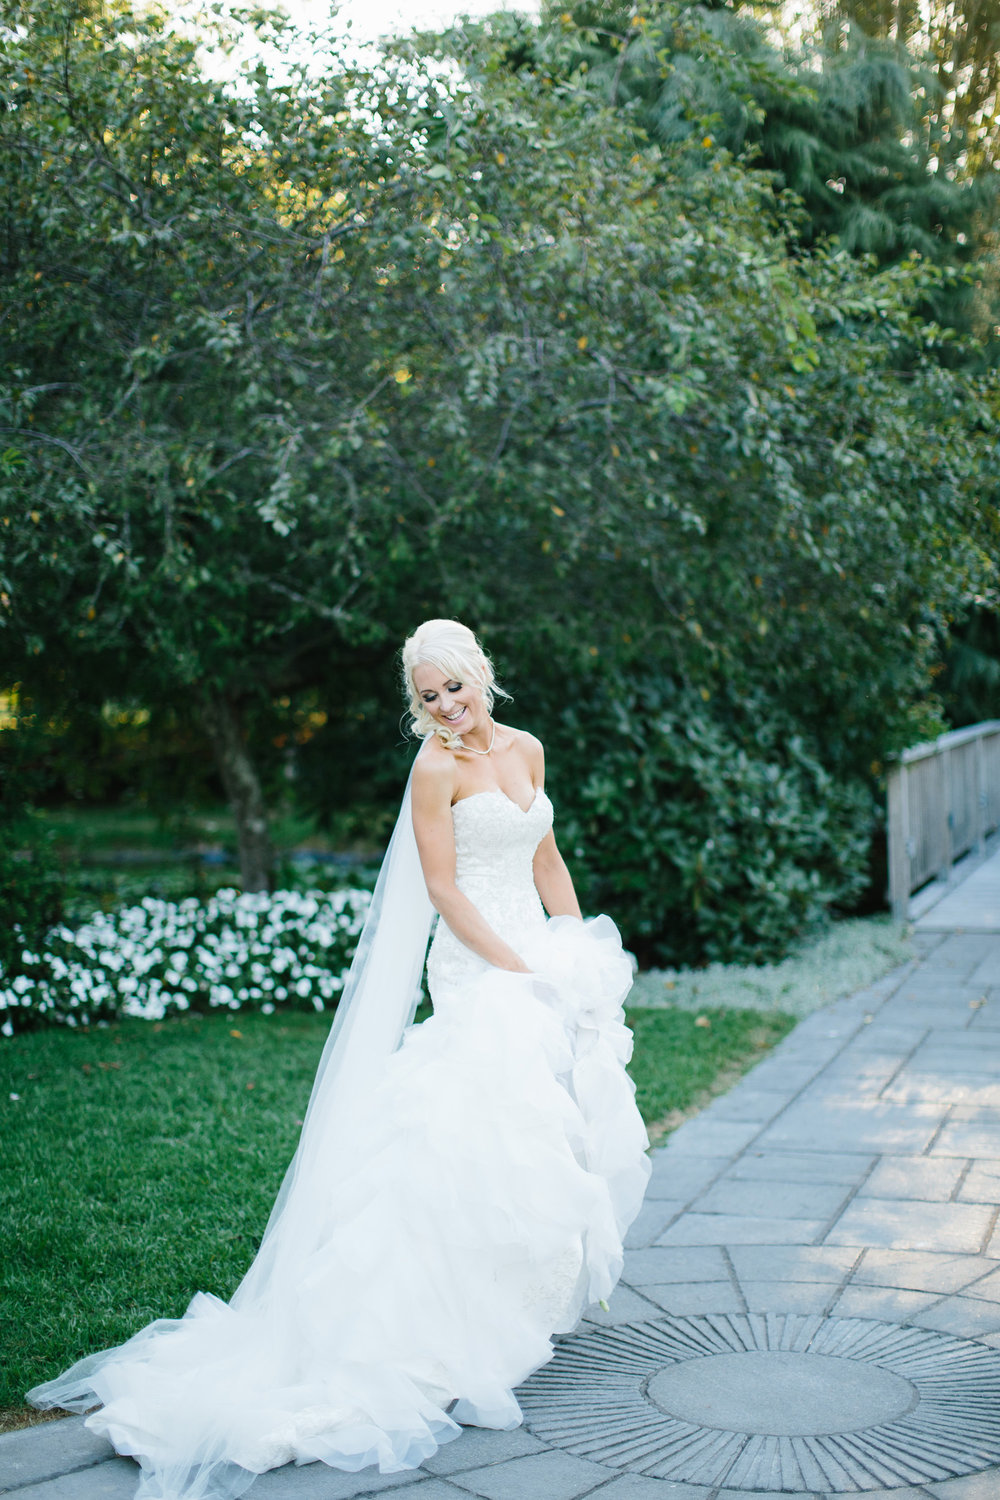 Astra Bridal Christa | Chrristina Rossi gown | Narrative of Love Photography